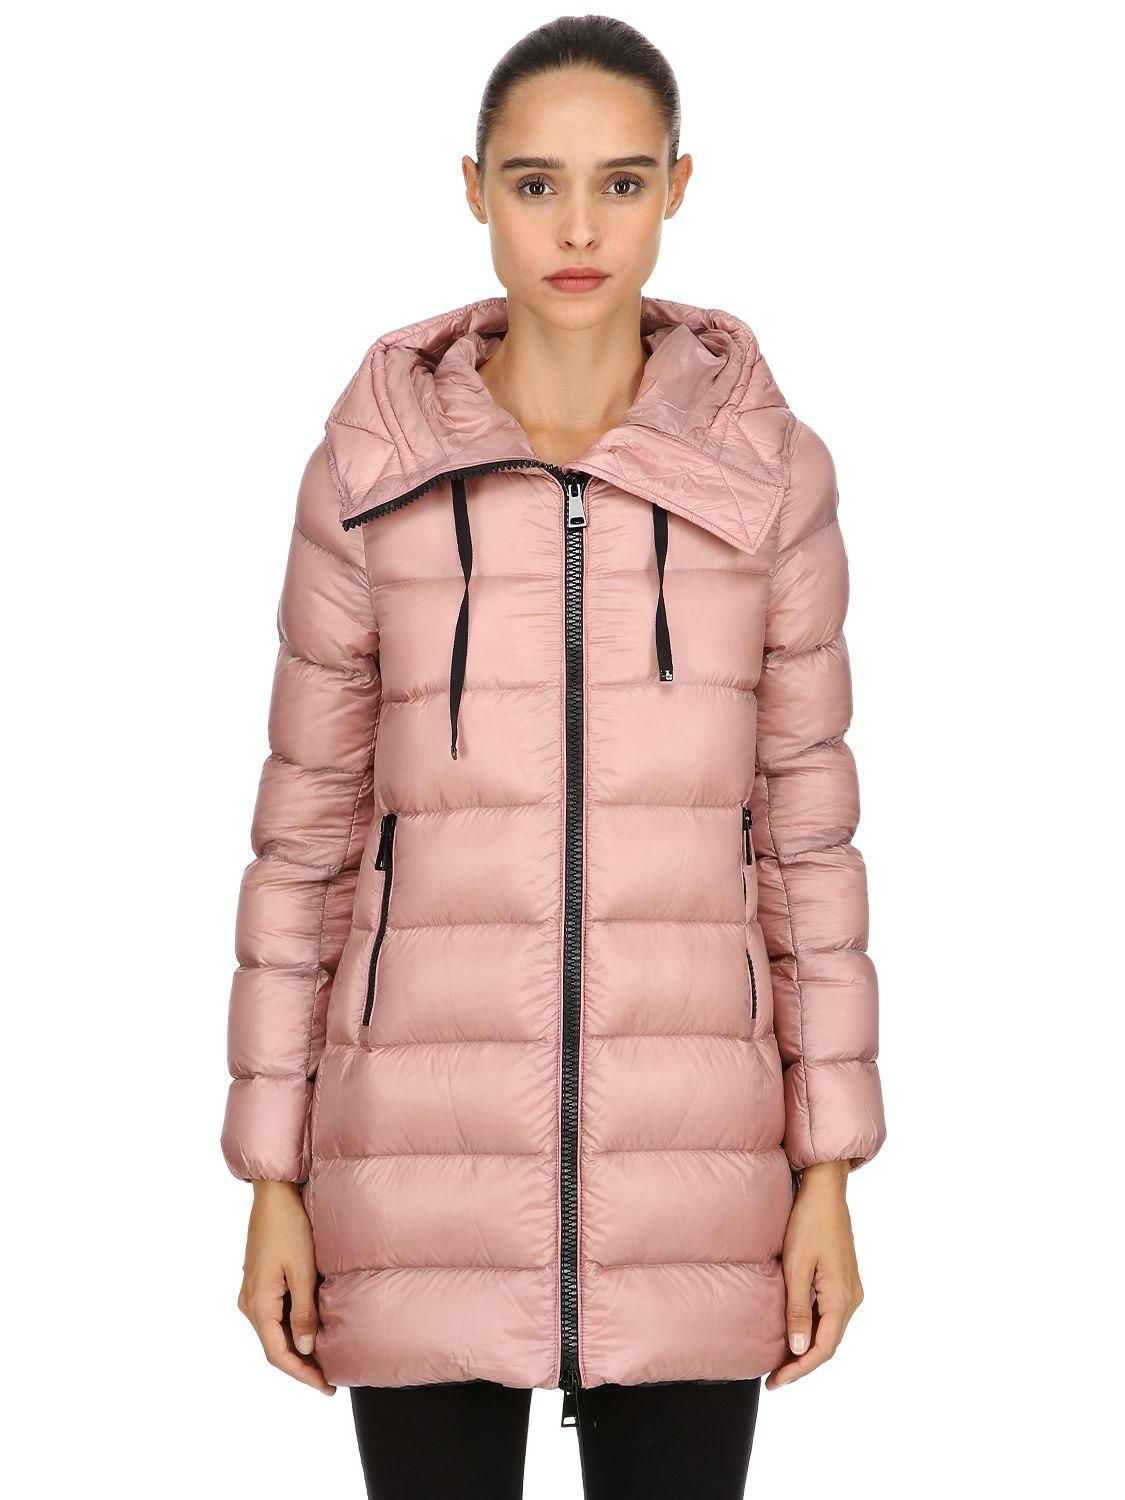 03ebe1448e8c coupon code for moncler jacket pink elephants 0cfd5 5cad3